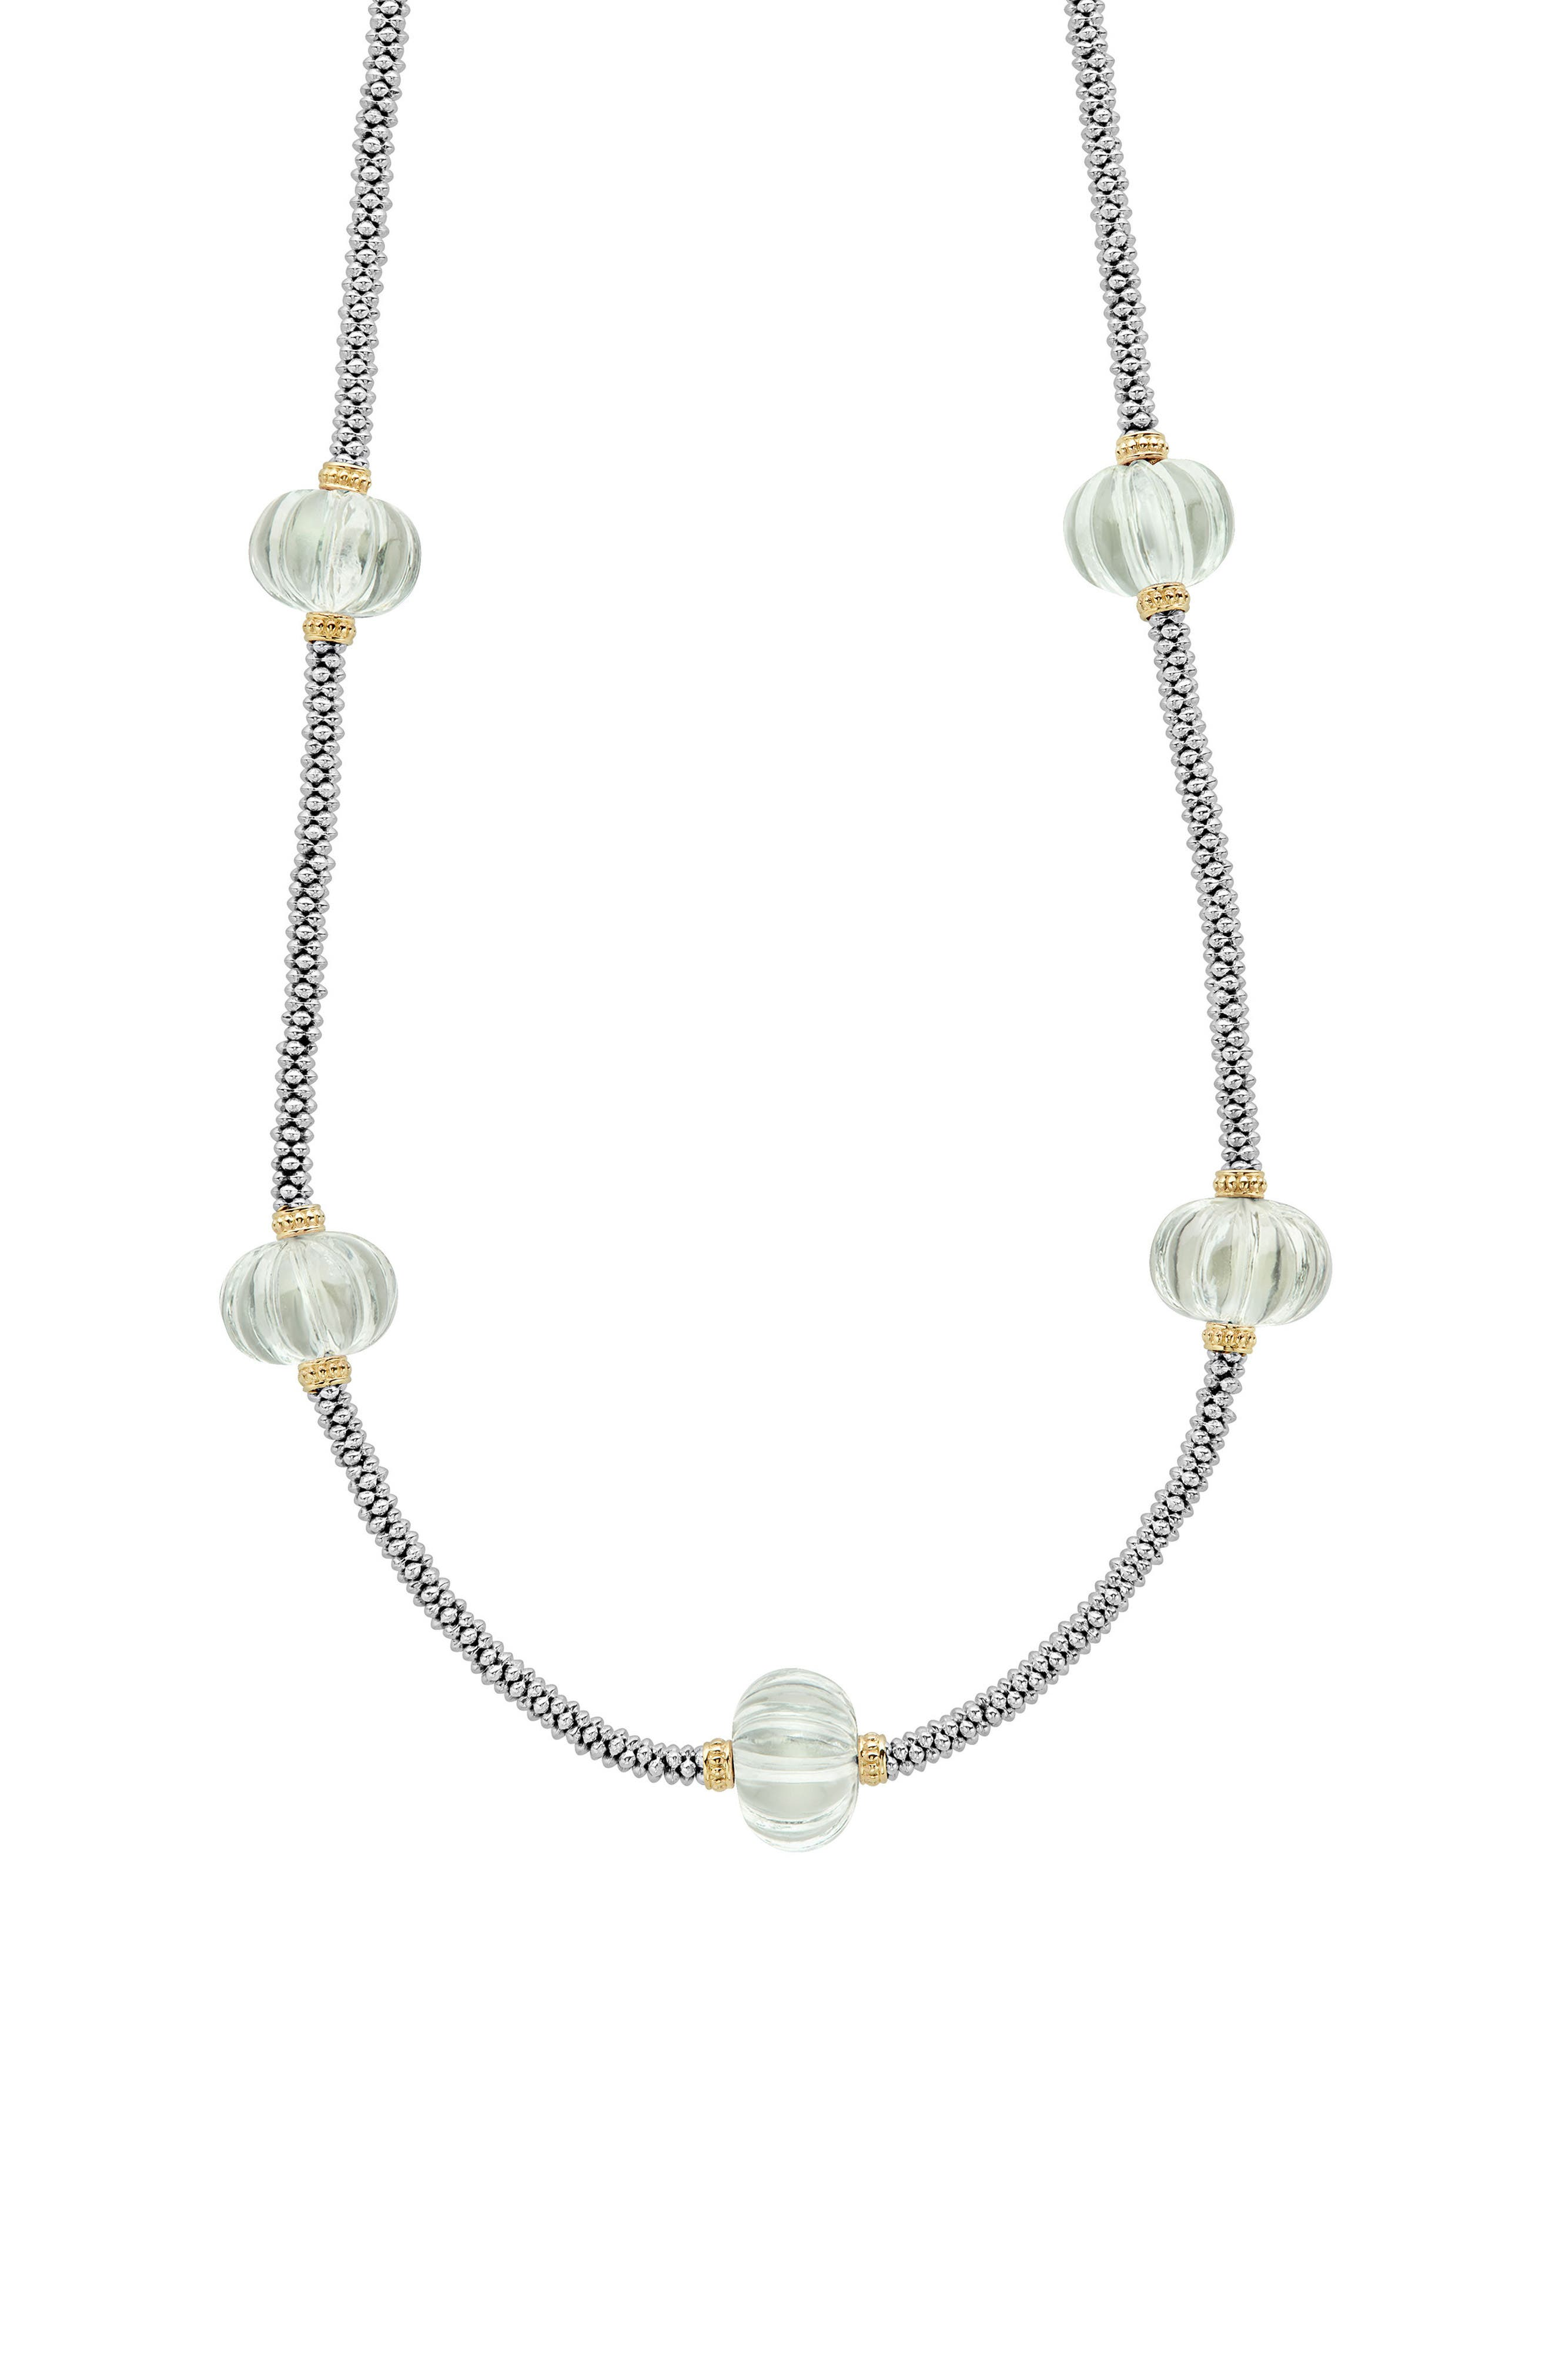 Caviar Forever Gemstone Melon Bead Rope Necklace,                             Alternate thumbnail 2, color,                             300